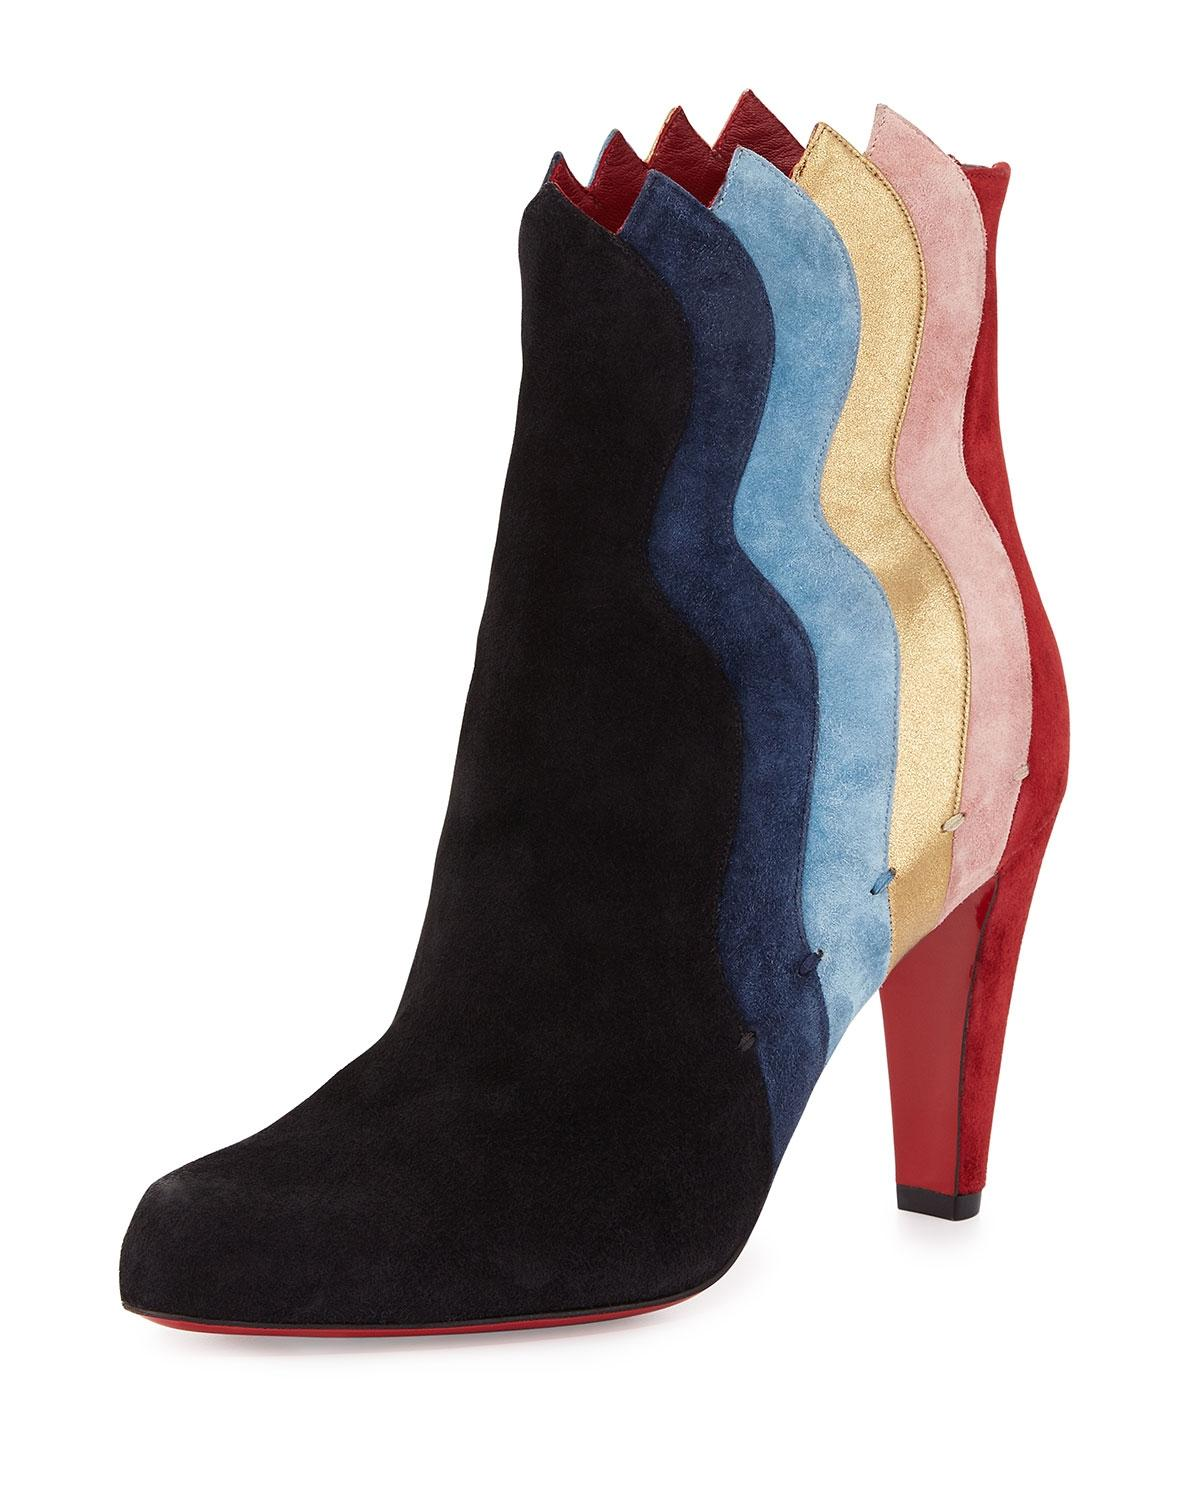 Christian Louboutin Red Black Blue Gold Pink Wavy Colorblock Suede Sole Black/Multi Boots/Booties Size EU 40 (Approx. US 10) Regular (M, B)